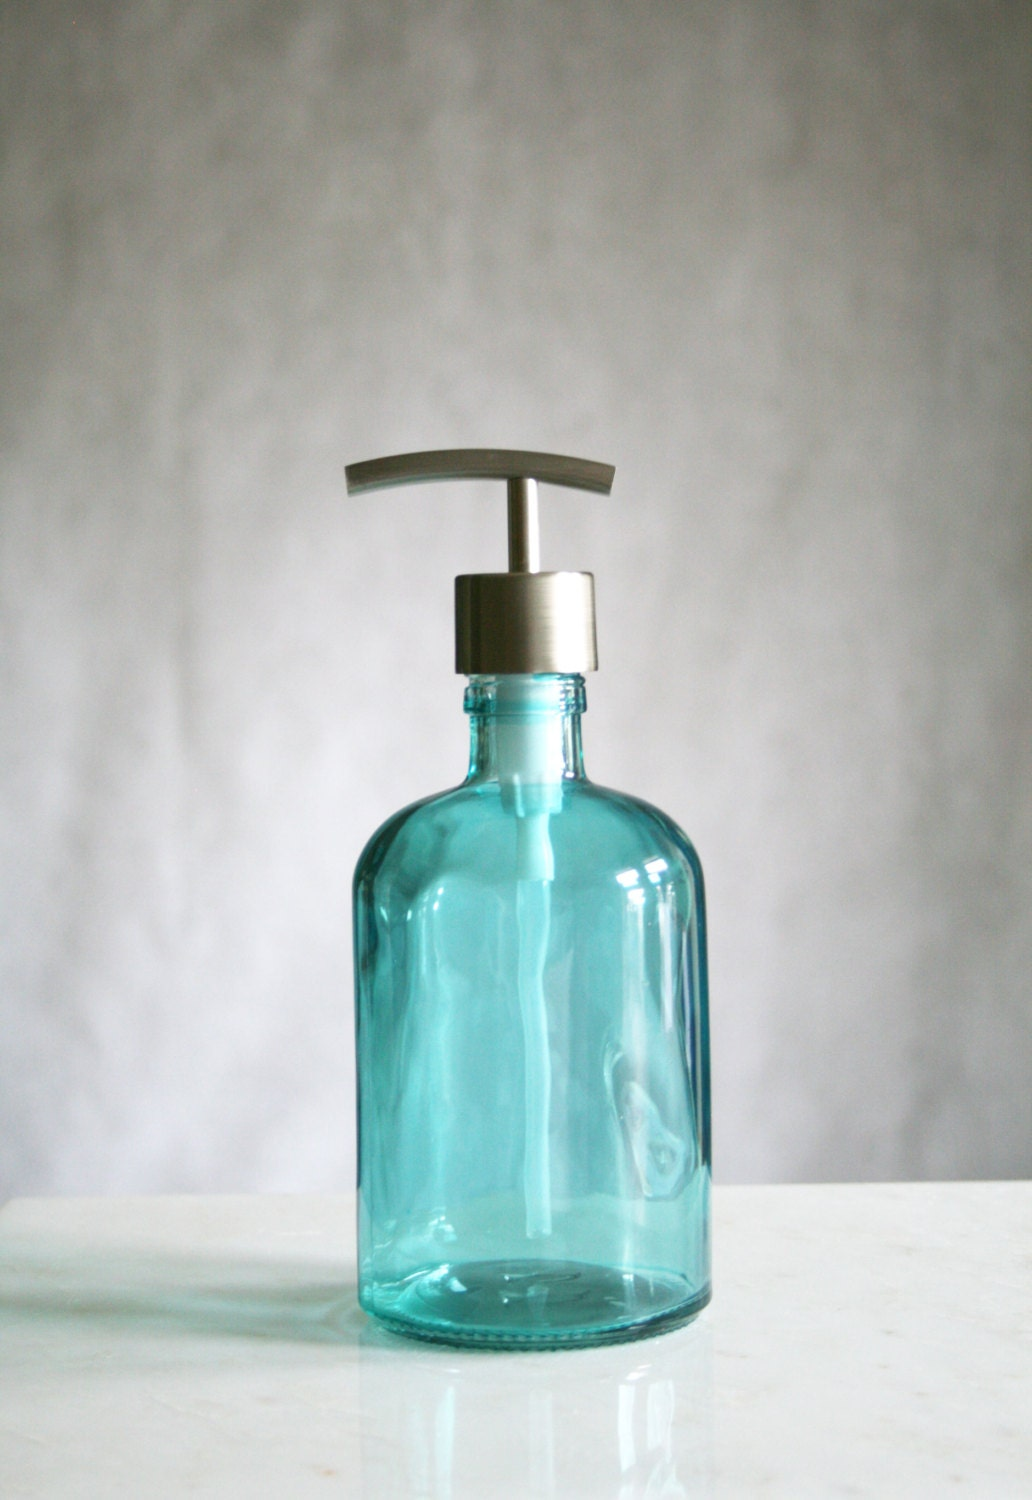 Choosing a glass soap dispenser doesn't mean limiting your choice in fit and finish. Glass hand soap dispensers come in a variety of looks, from clear crystal to flecked with color and much more. Whether it's a wall mounted soap dispenser or a free standing gel pump, glass can be the focal point of .